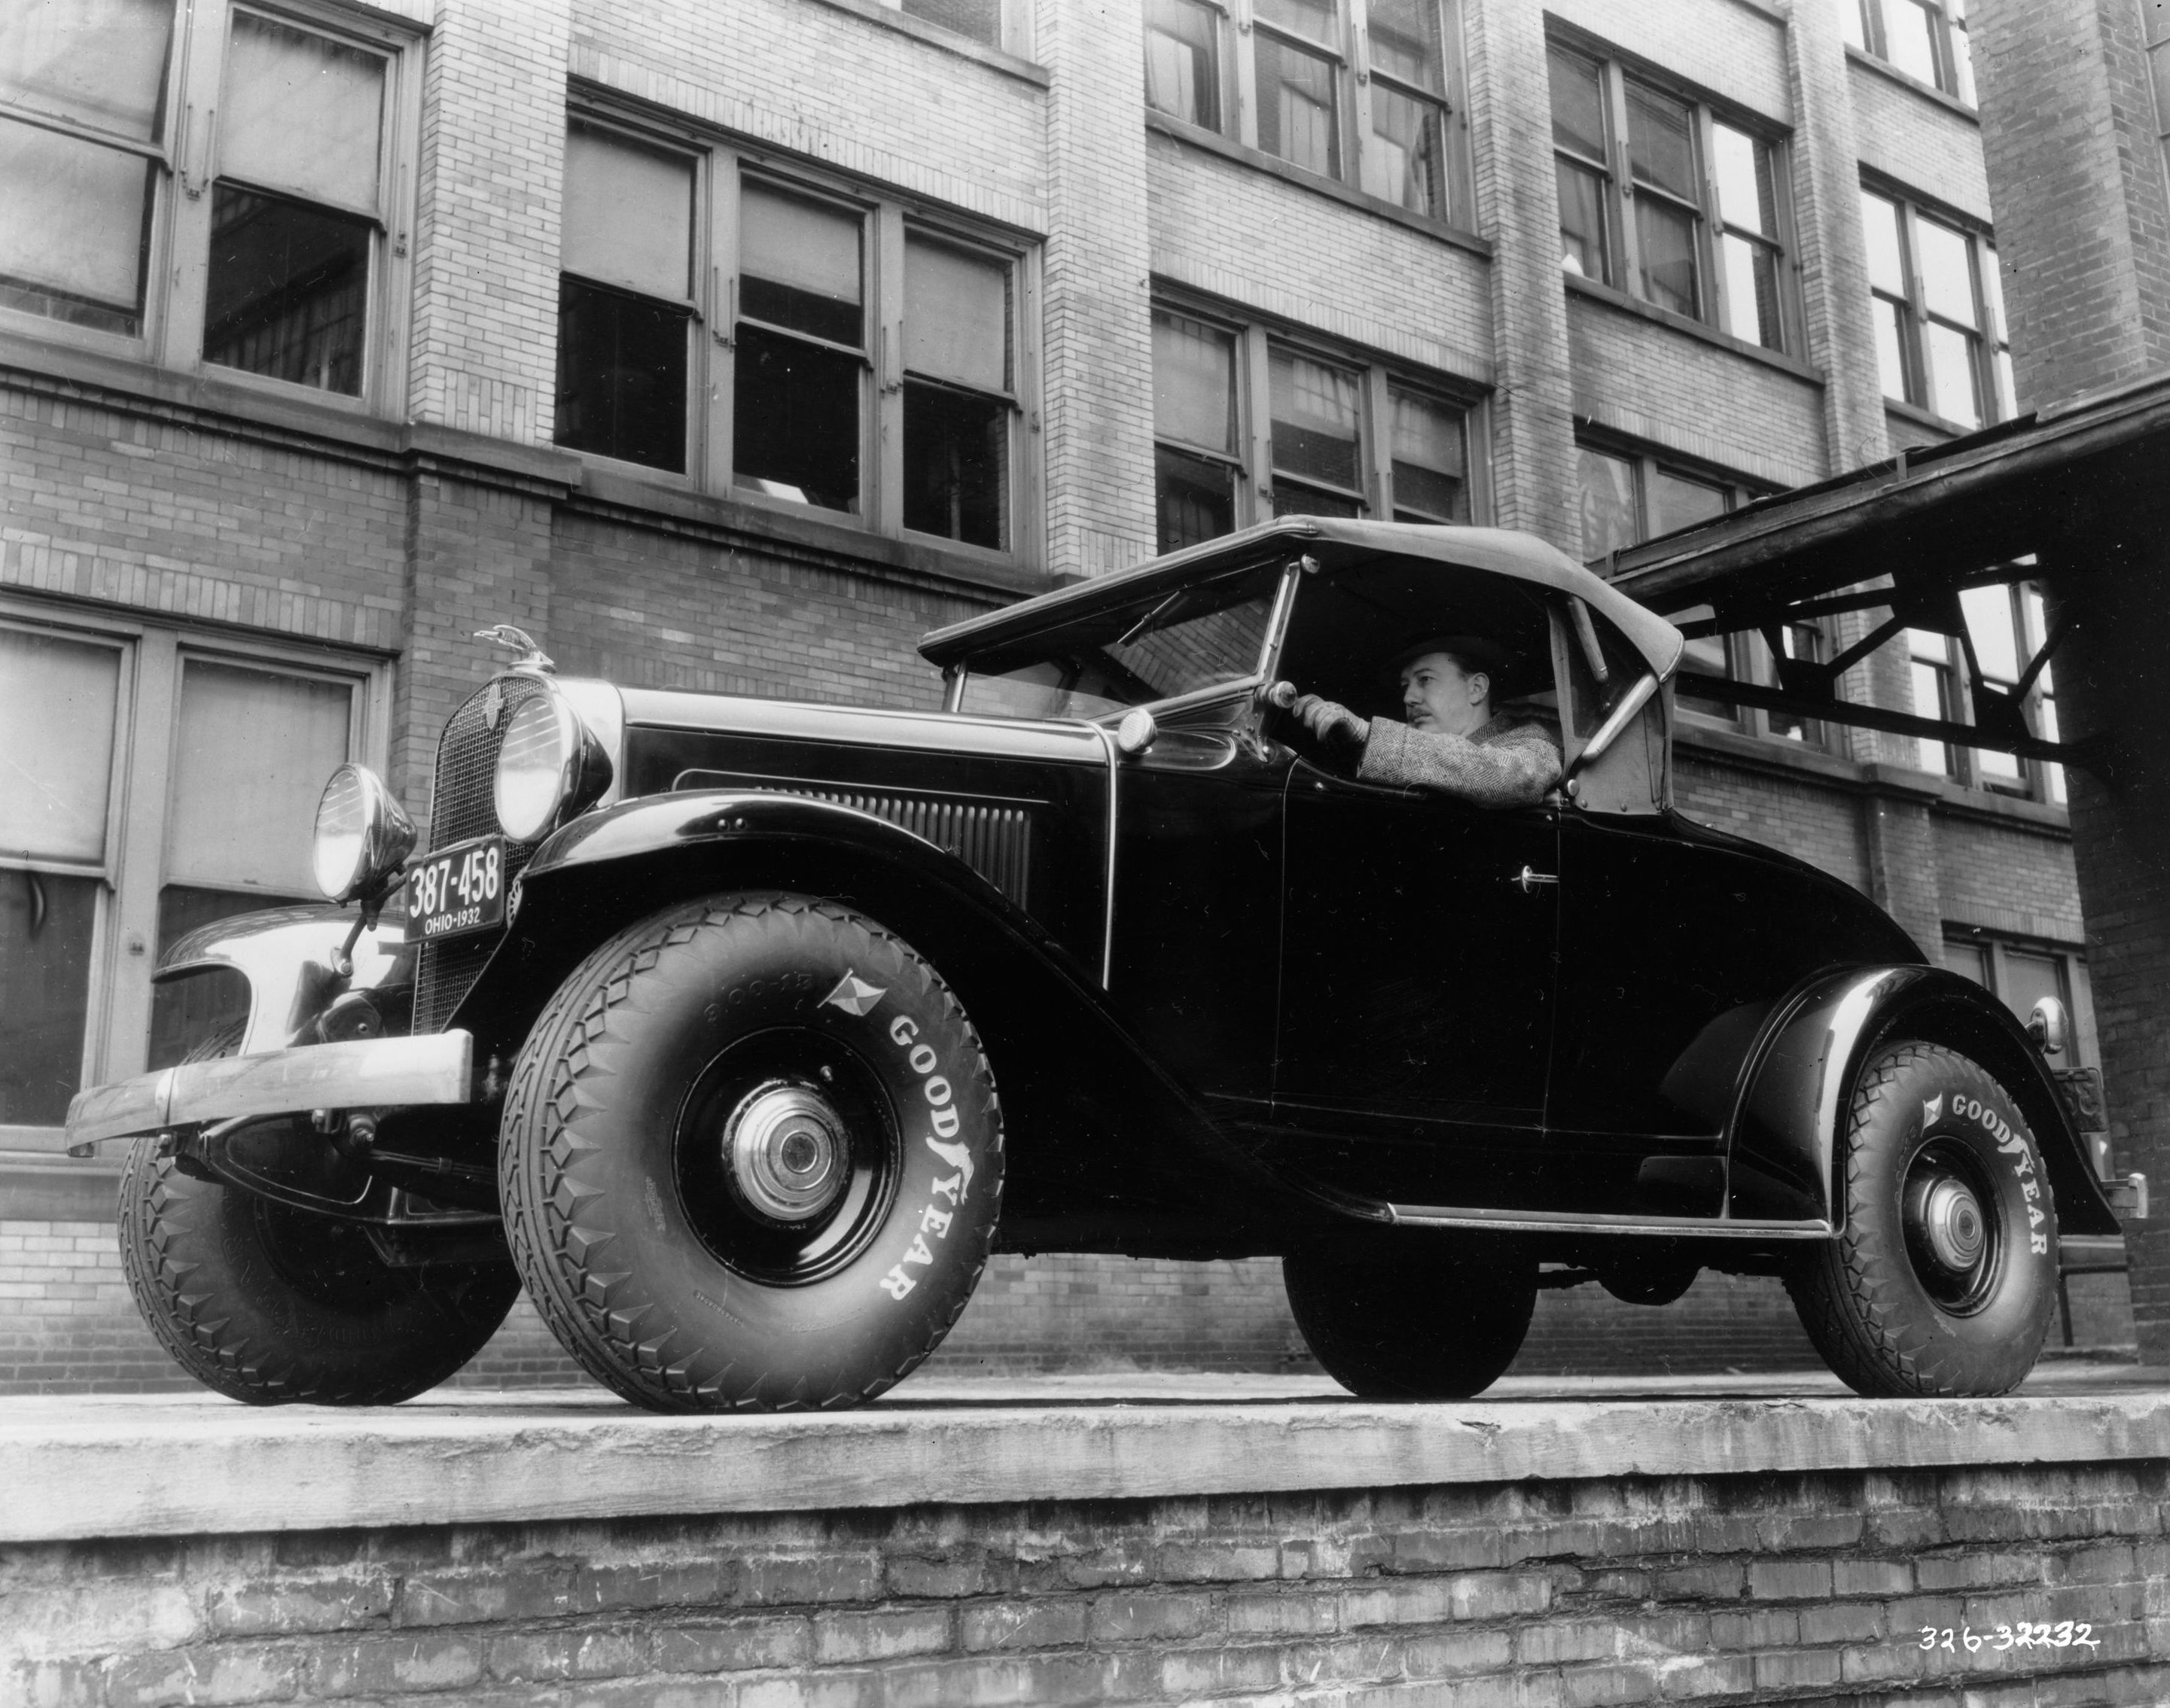 Black and White Photo of Classic Car with Goodyear Tires